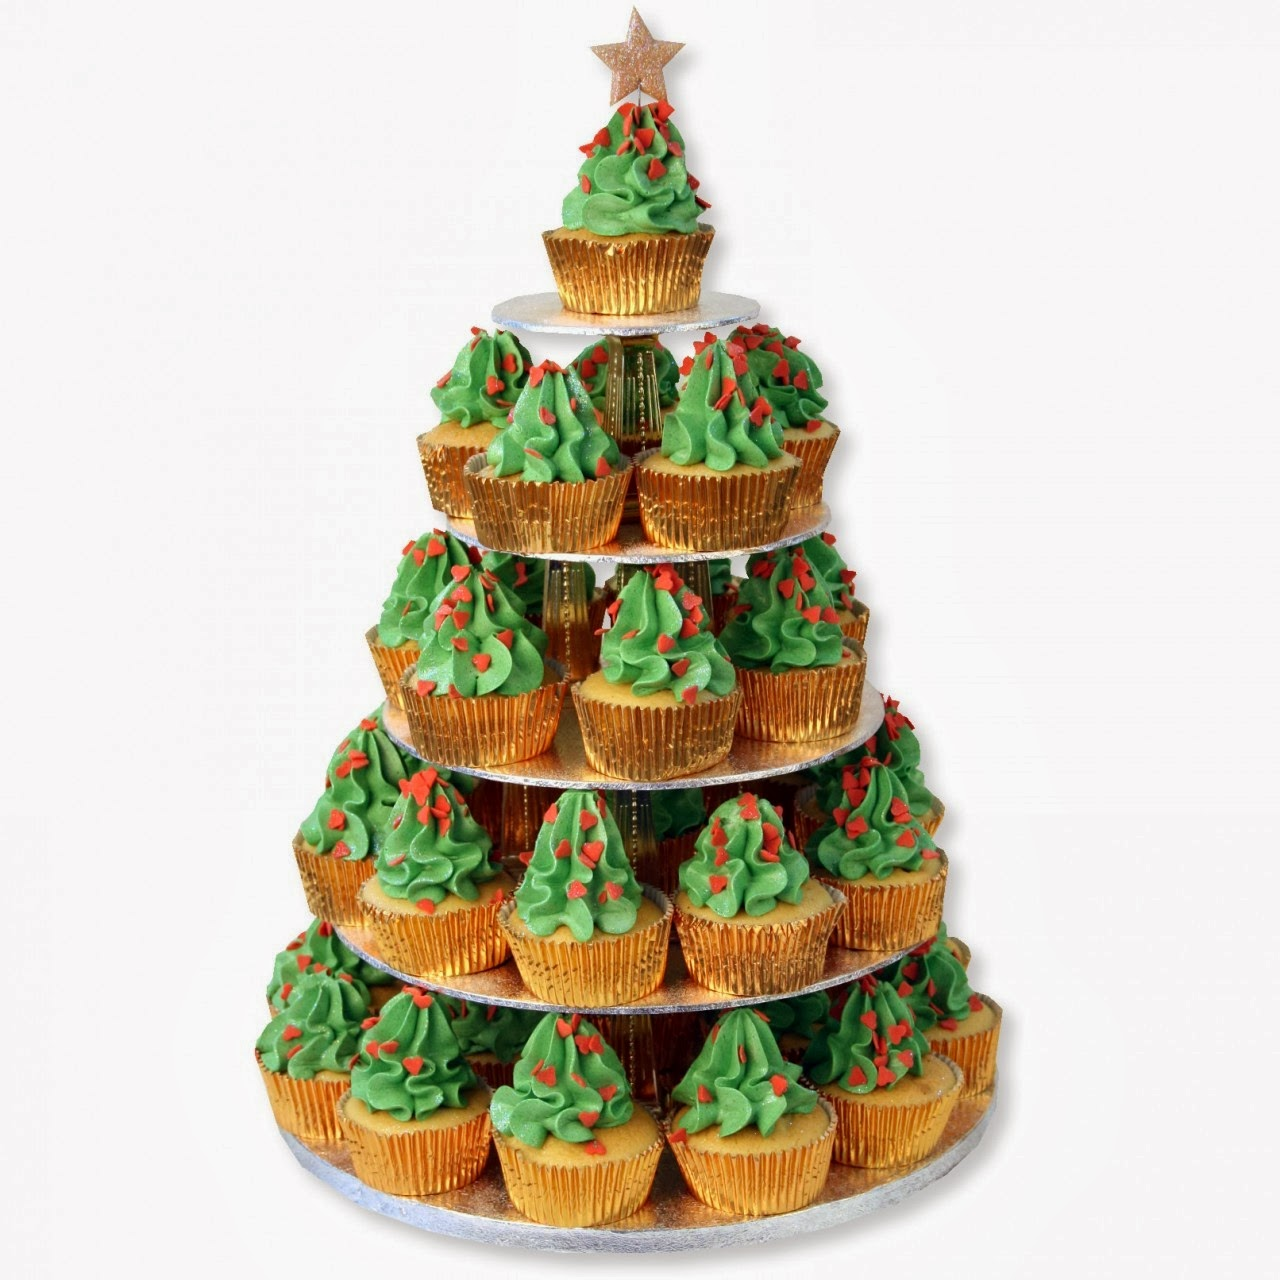 Images Of Christmas Tree Cake : Elizannie: Deck the Halls [1] - O! Christmas Tree!